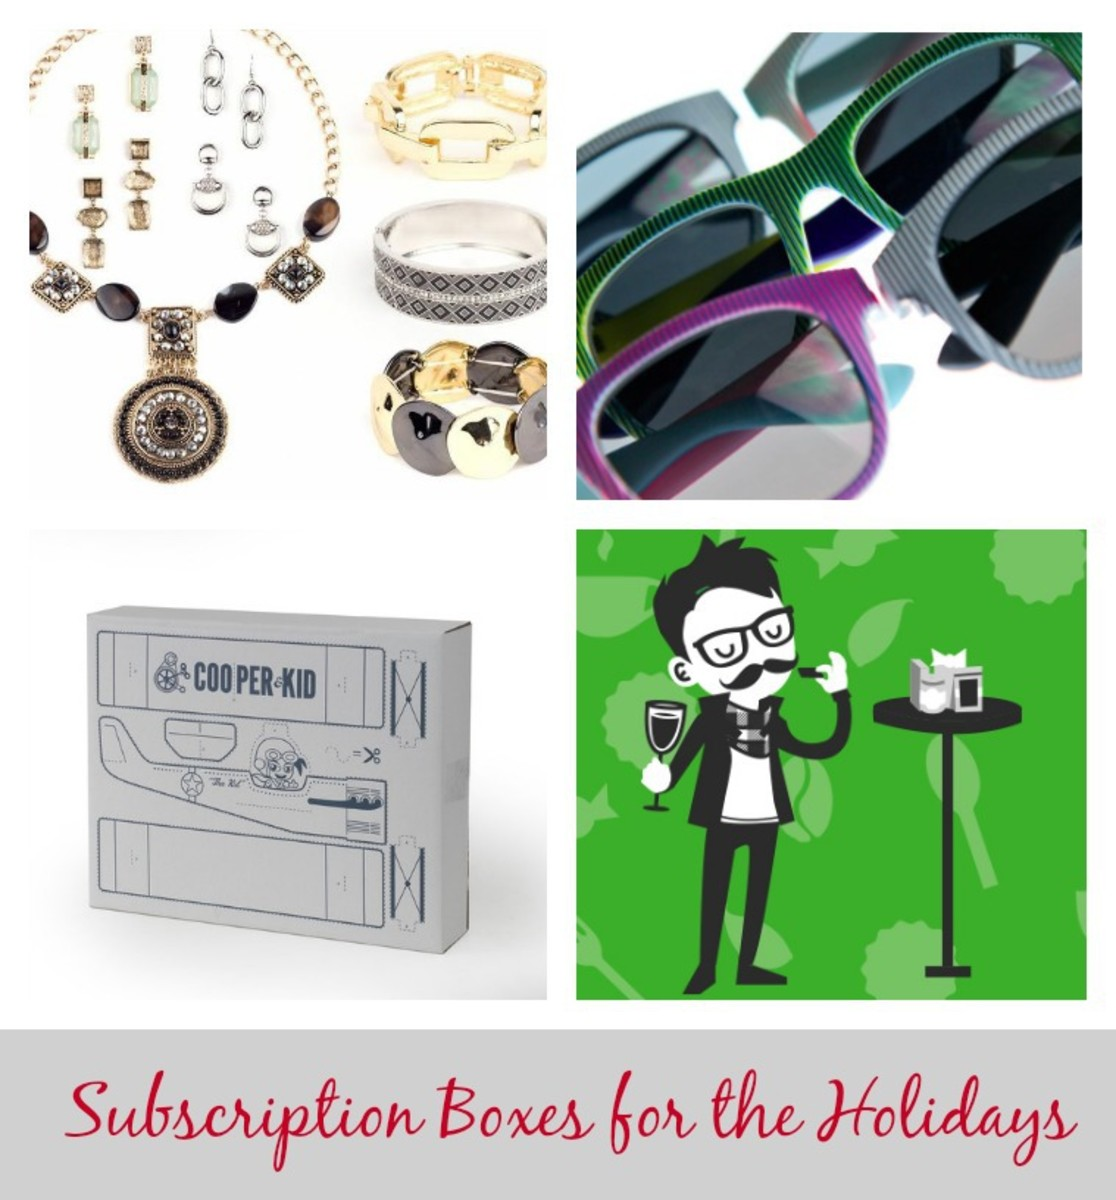 Subscription Boxes, holidays